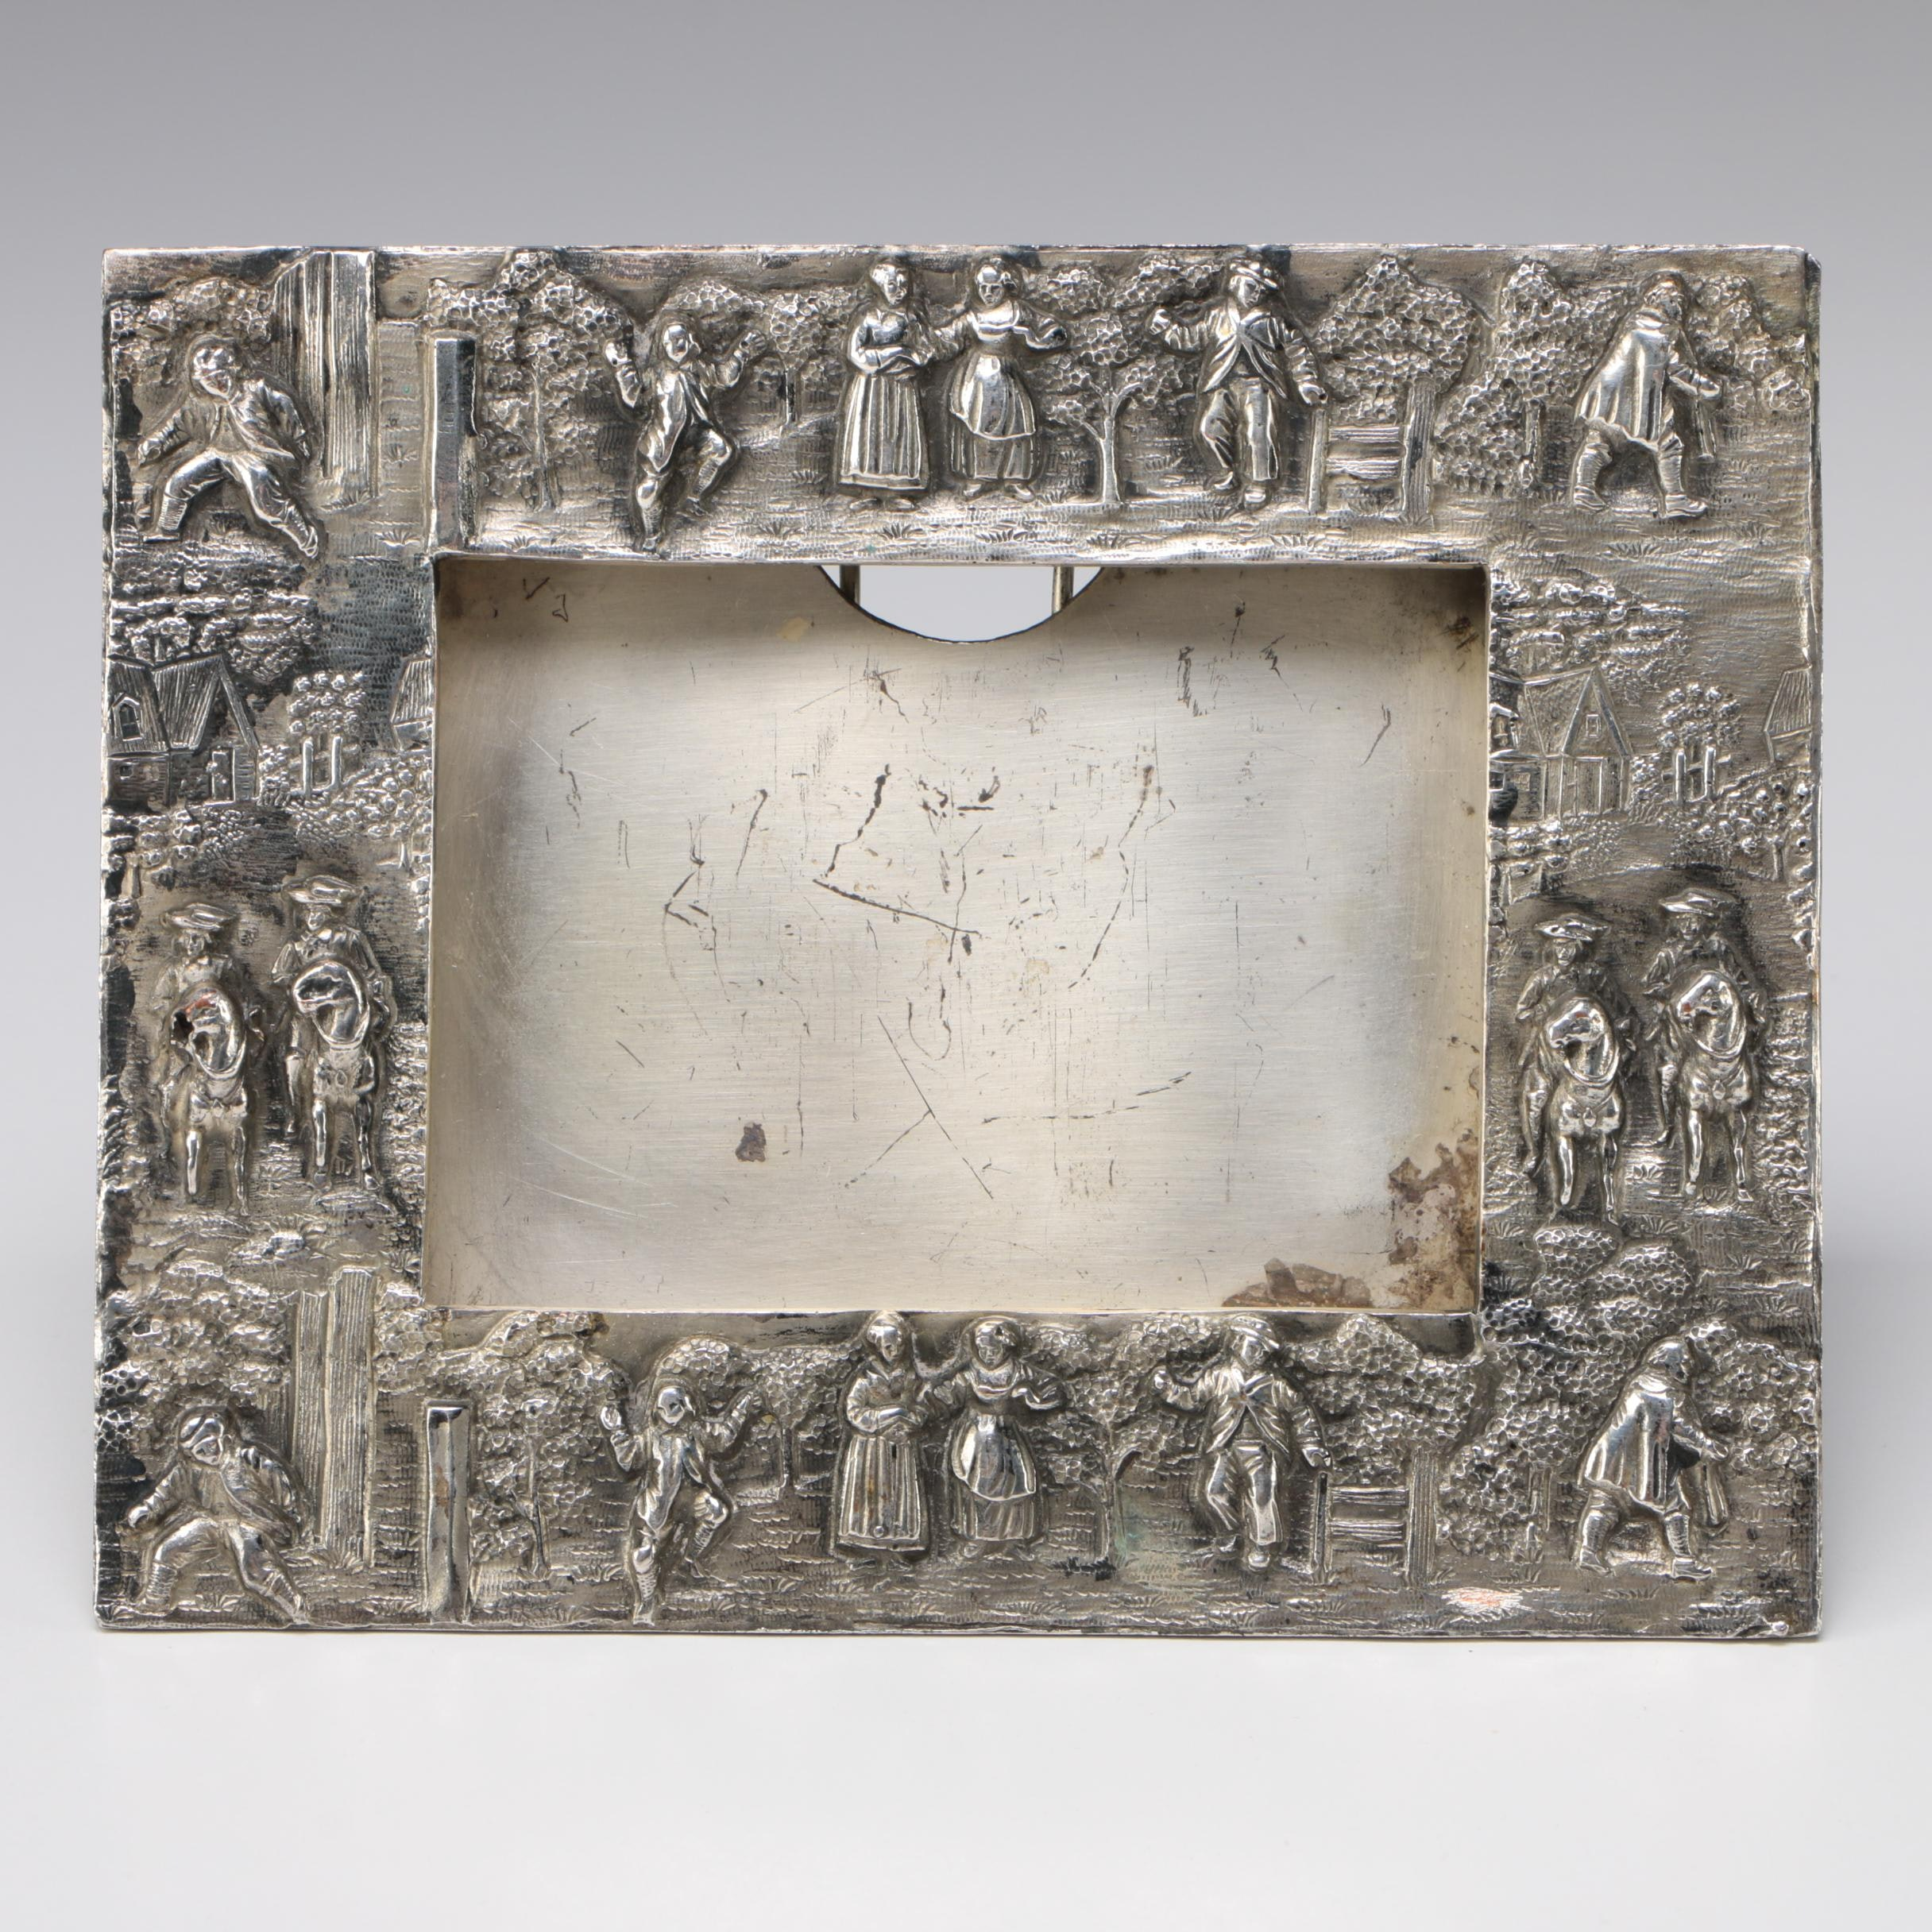 E.G. Webster & Son Silver Plate Repoussé Village Scene Frame, Early 20th Century